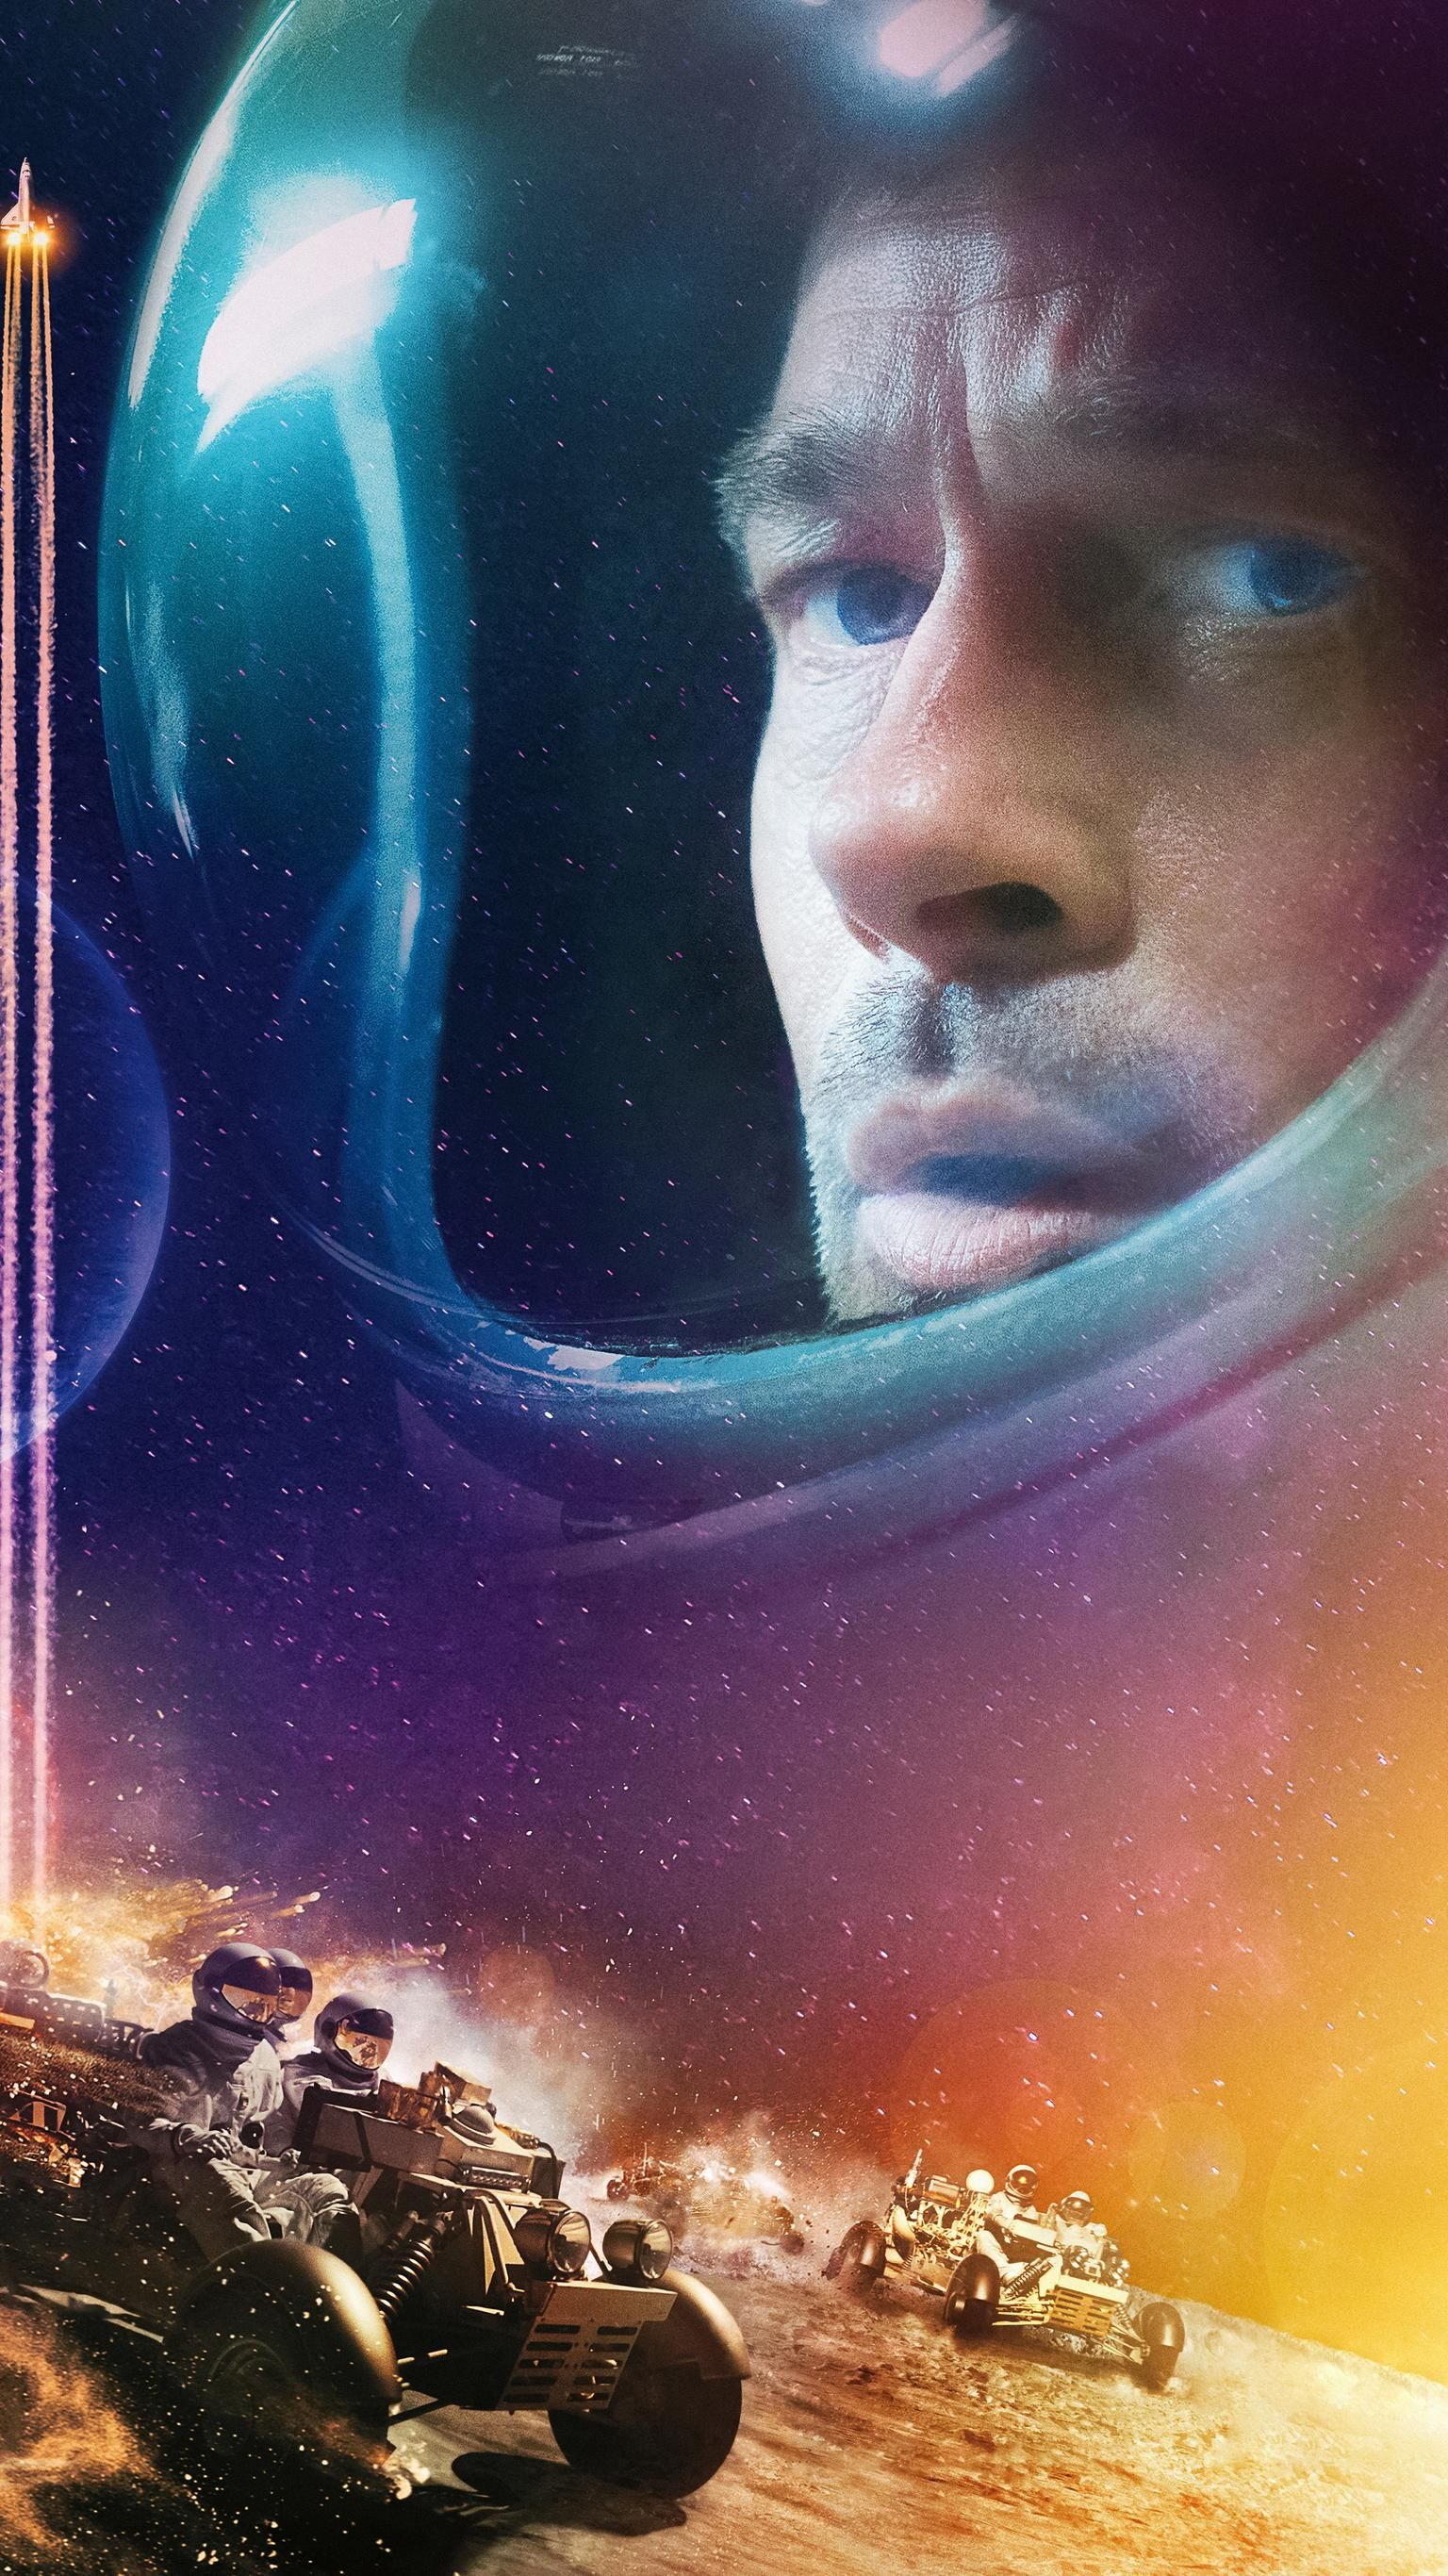 Ad Astra 2019 Phone Wallpaper Moviemania Brad Pitt Ad Astra Movie Wallpapers